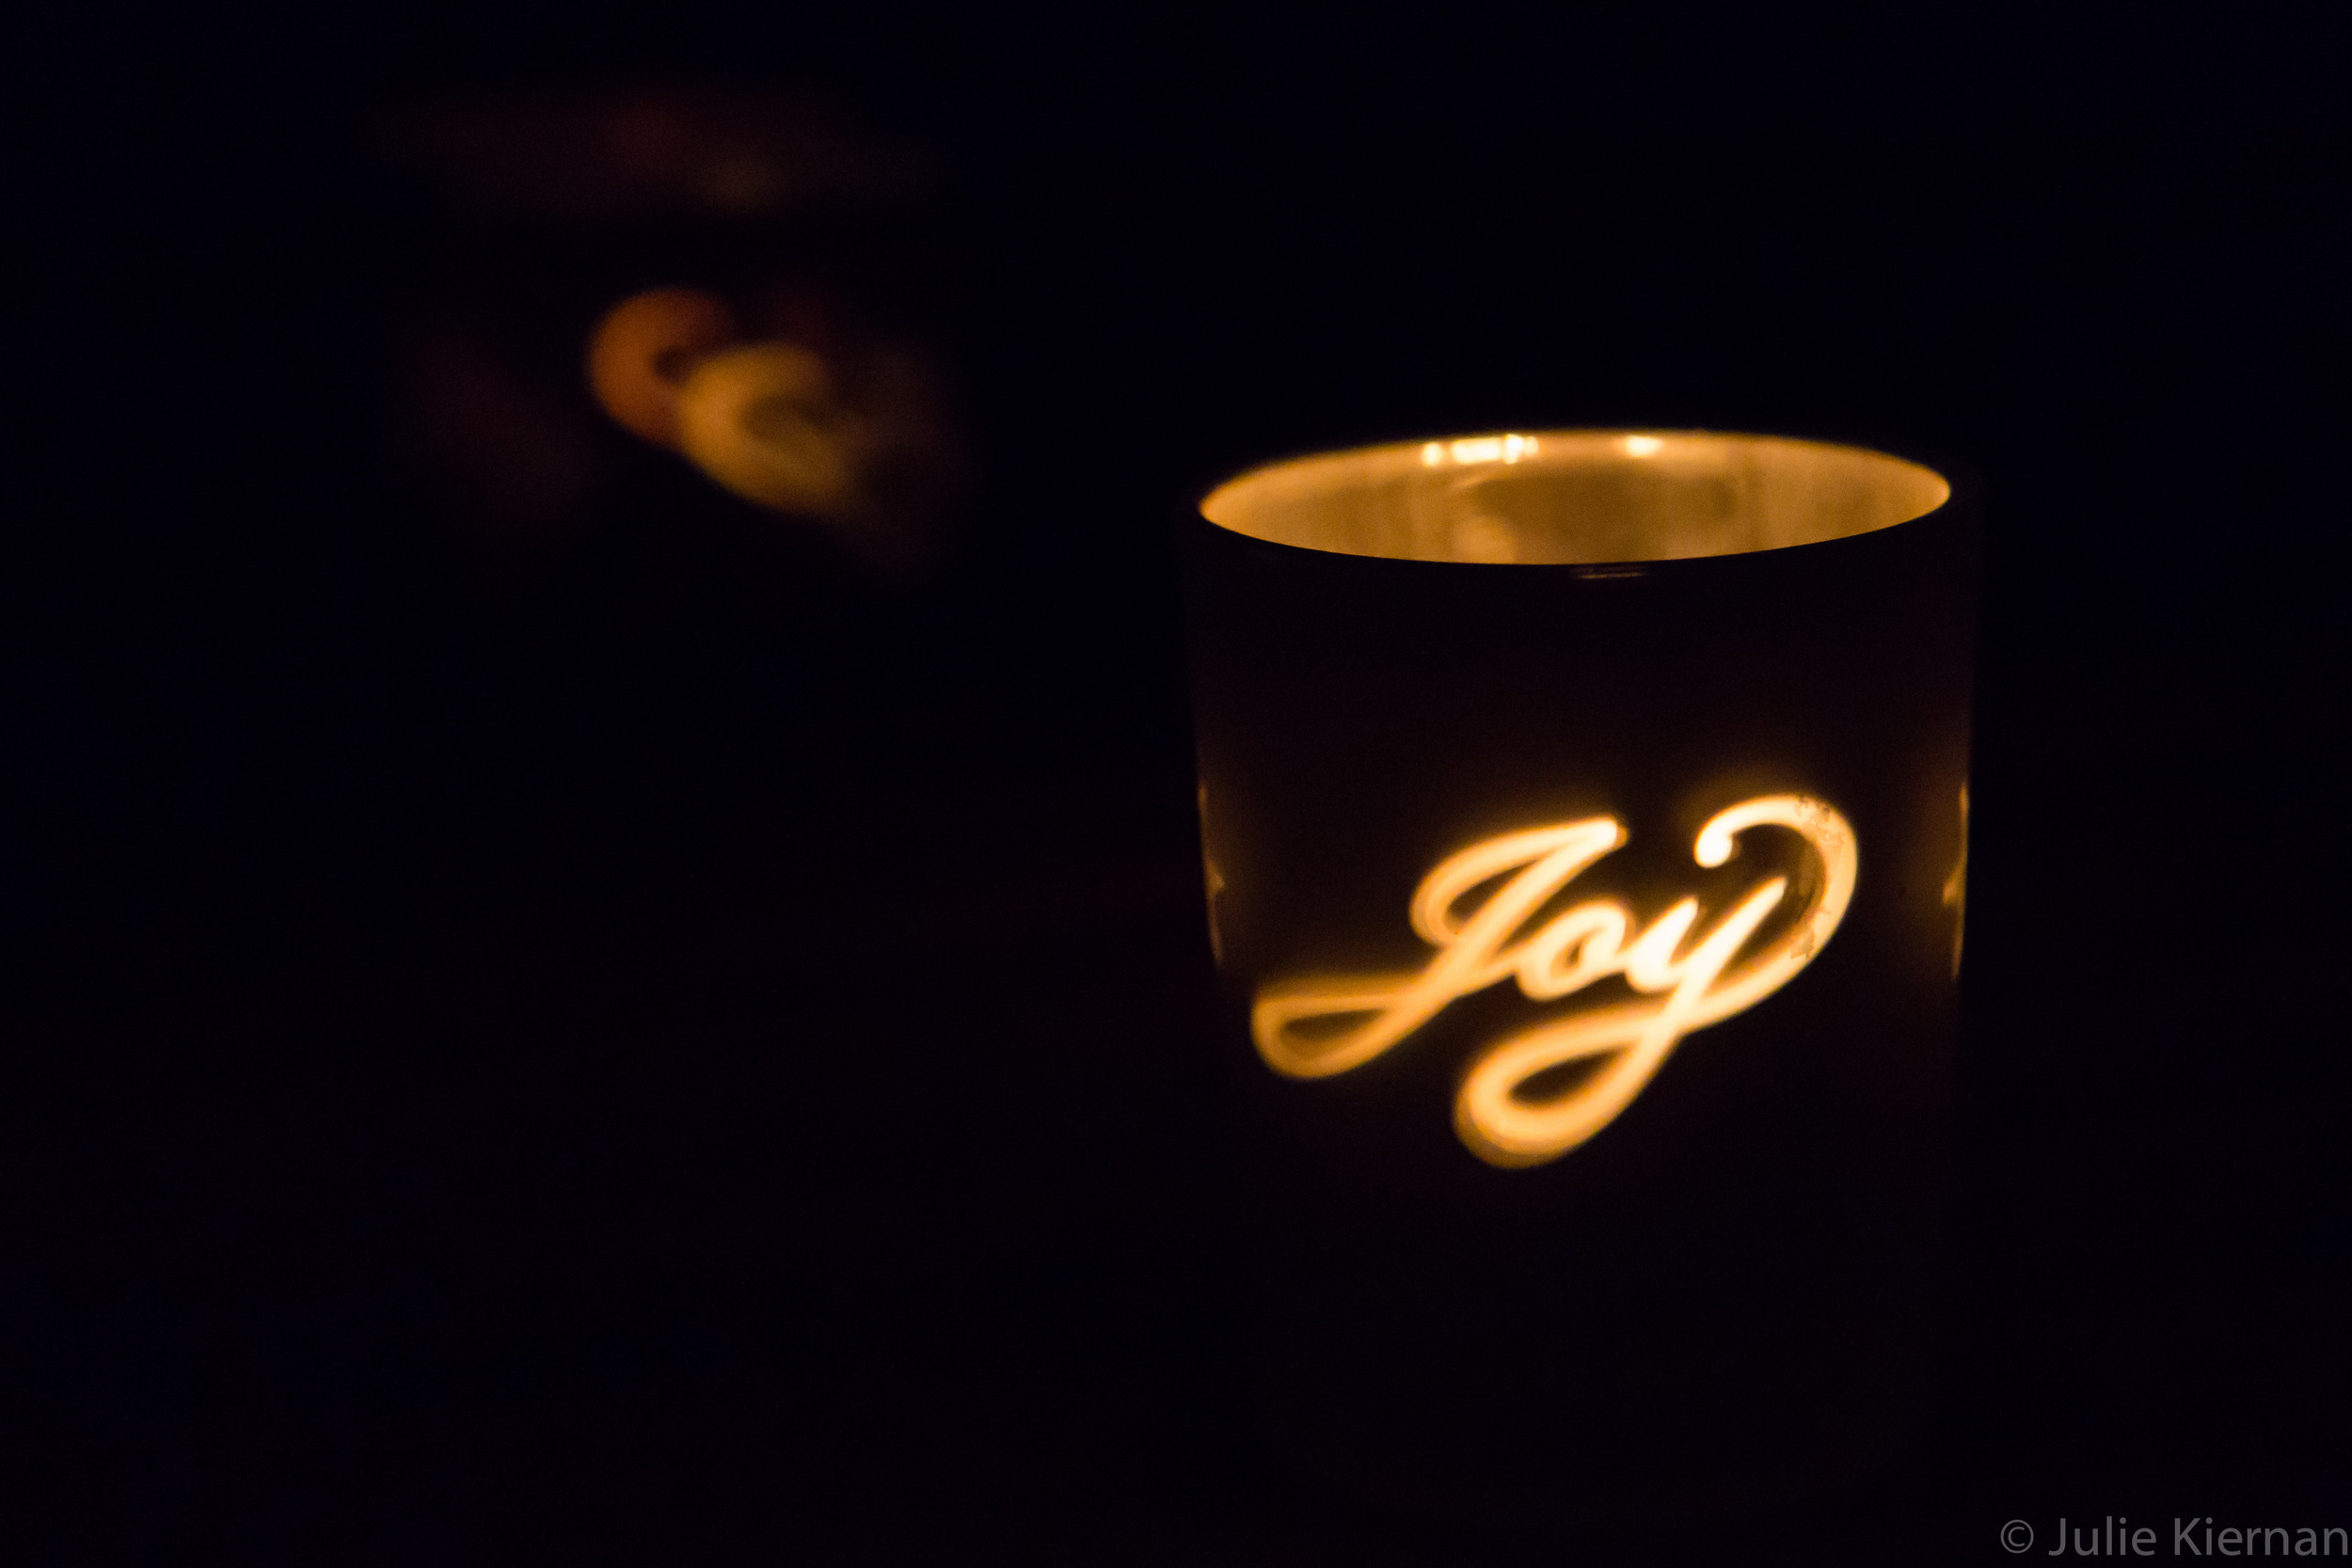 In memory of my sister, Sue, who radiated joy.